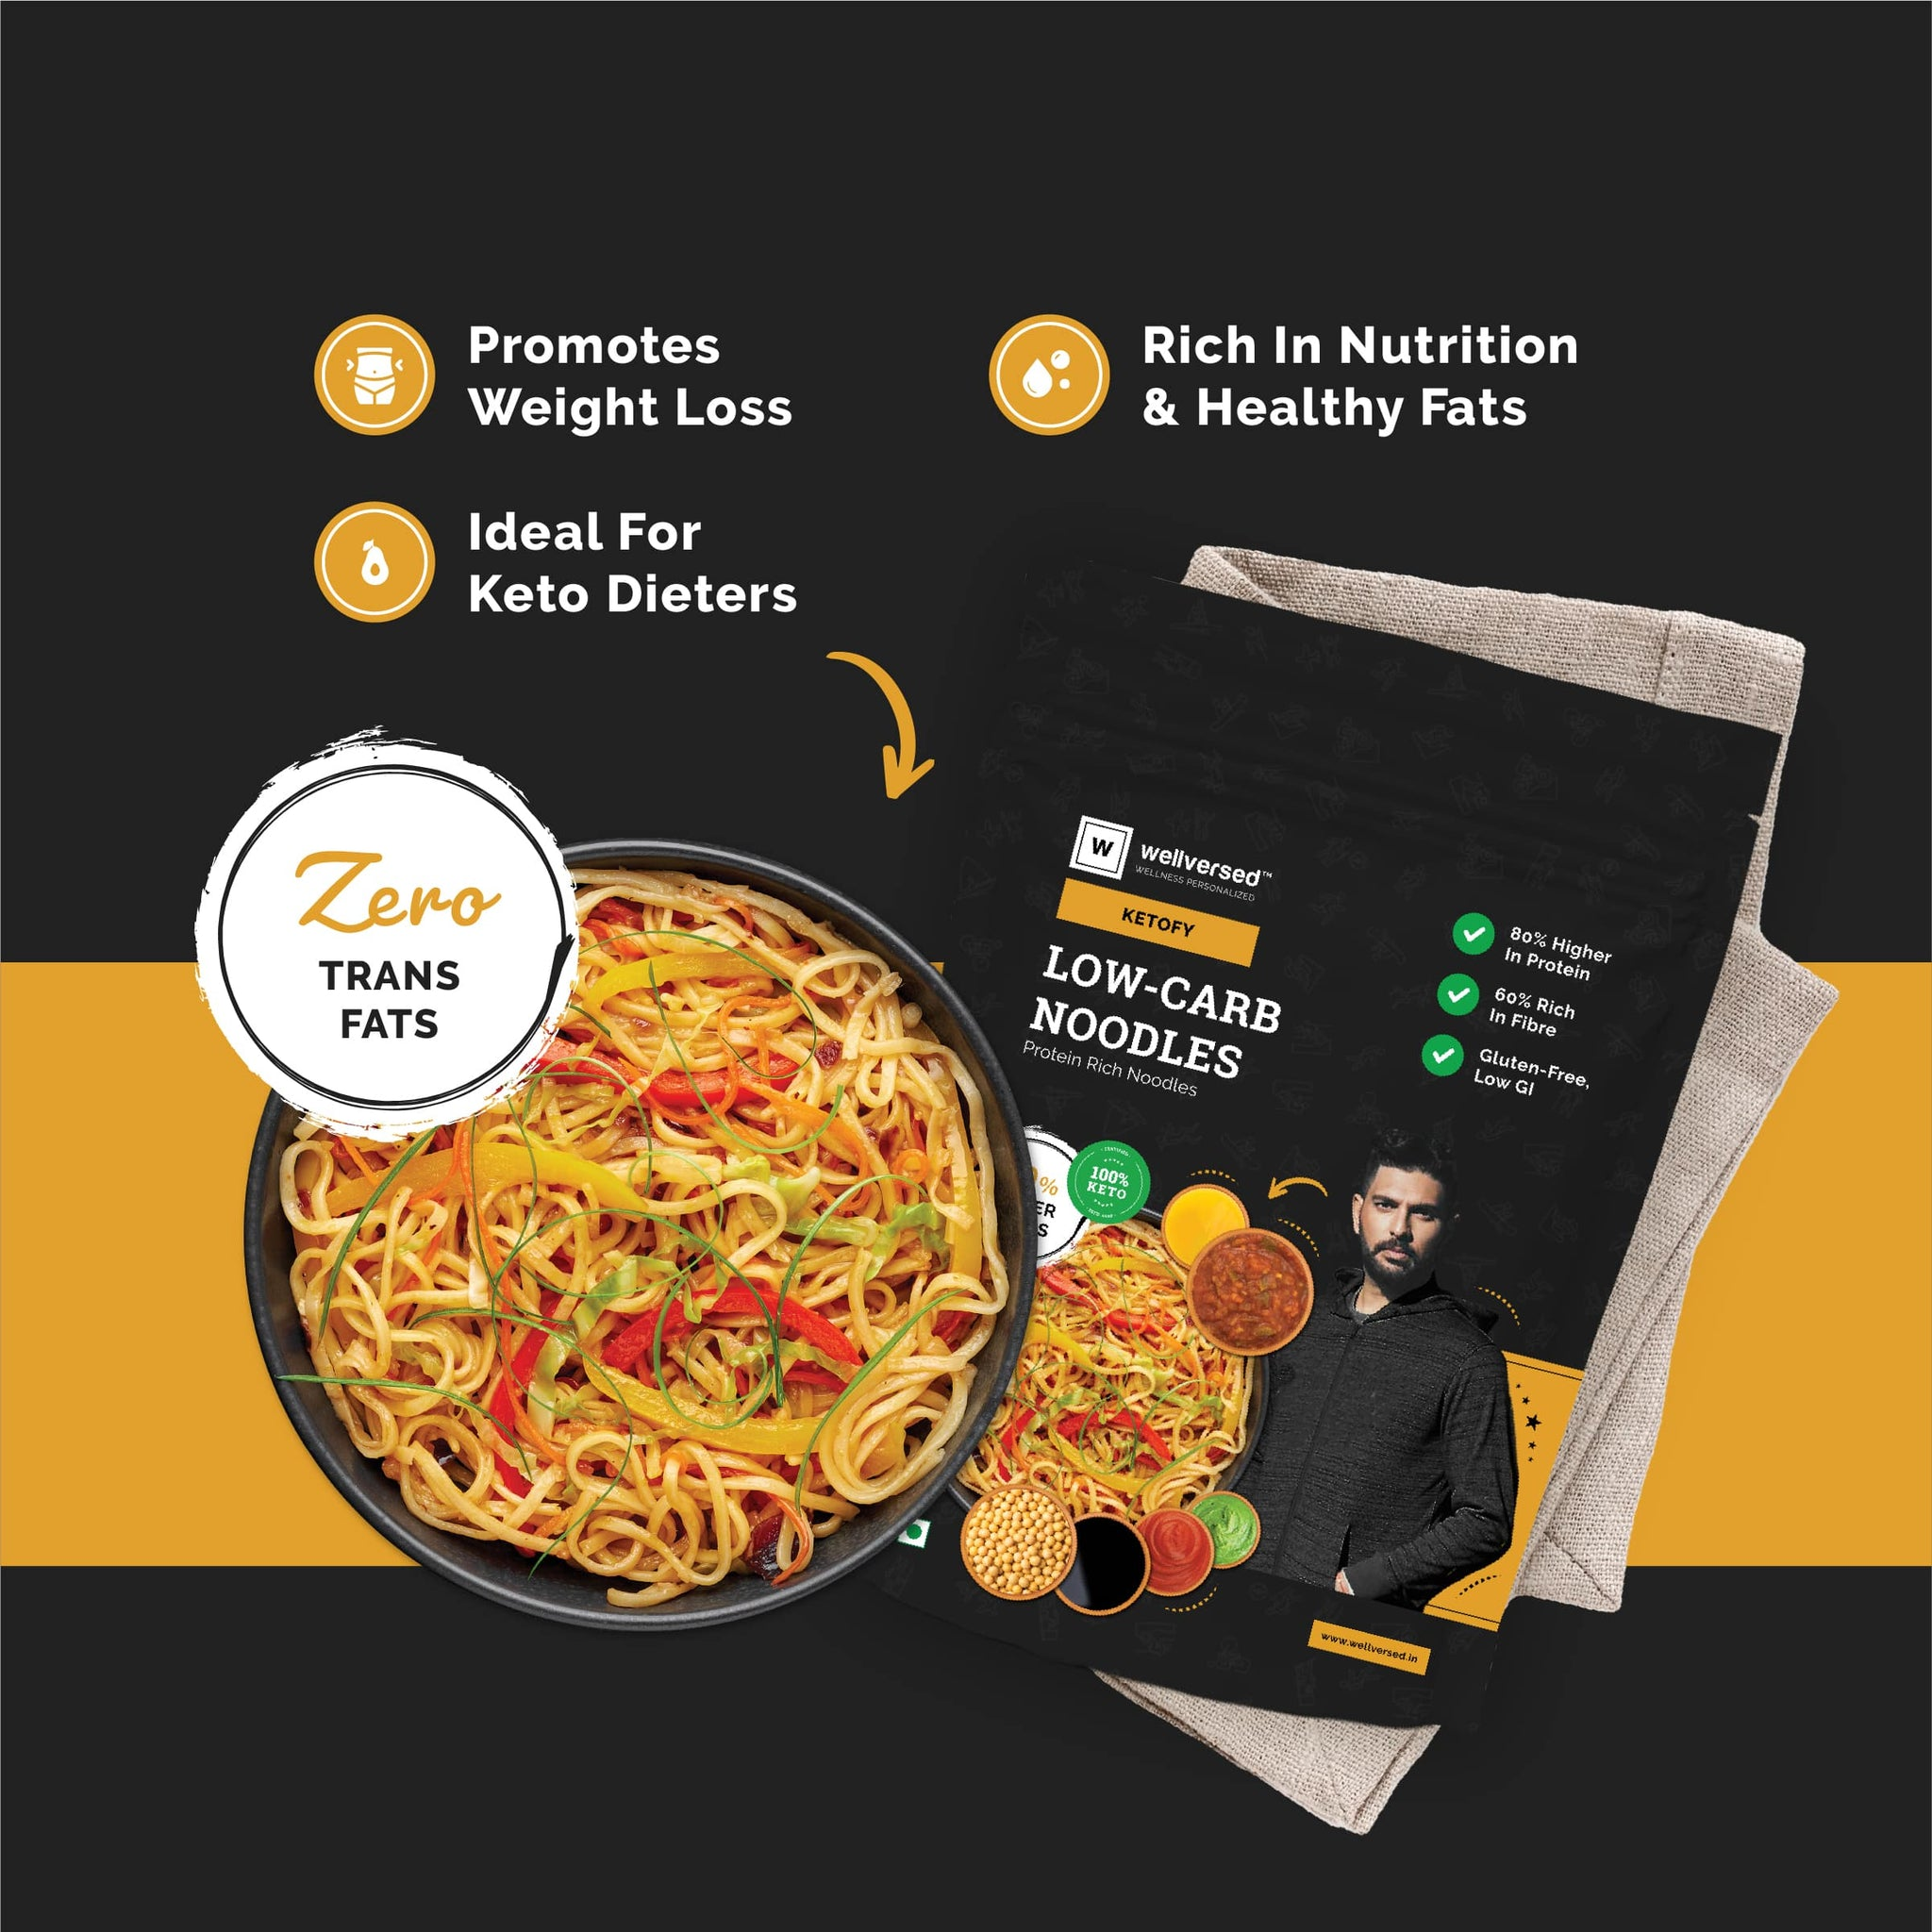 Ketofy Low-Carb Keto Friendly Noodles | Low Glycemic, Low-Carb | Protein-Rich